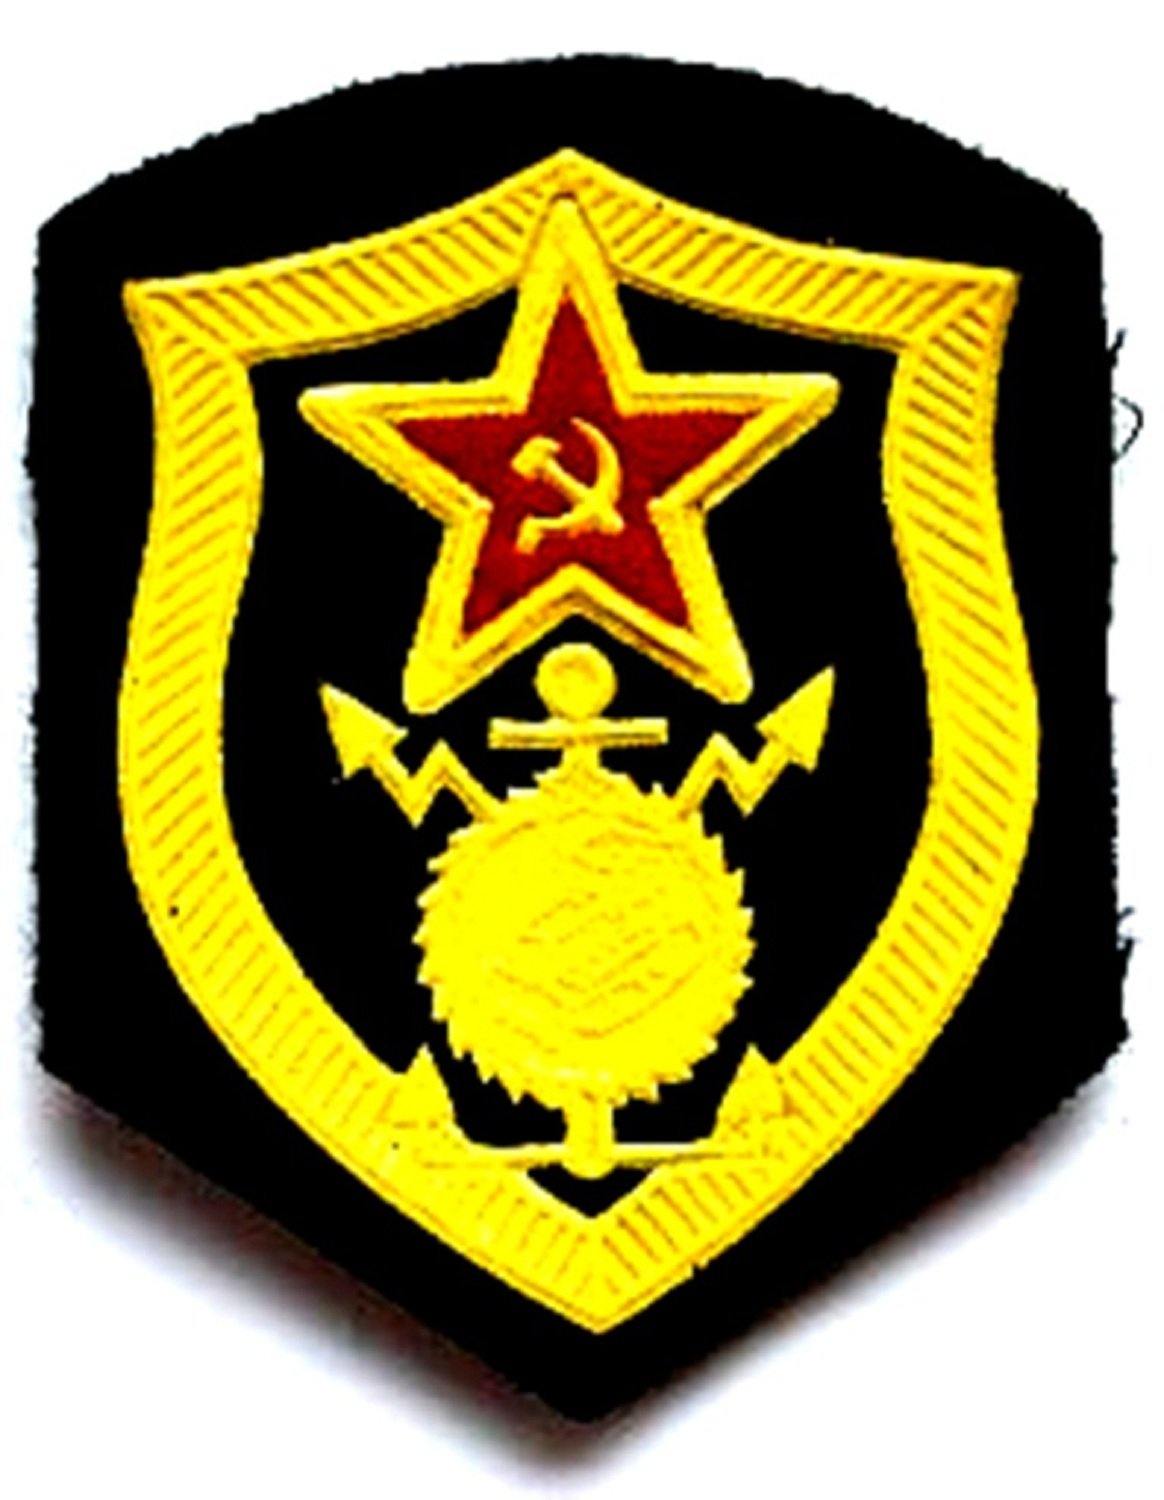 Build Troops Patch USSR Soviet Union Russian Armed Forces Military Uniform